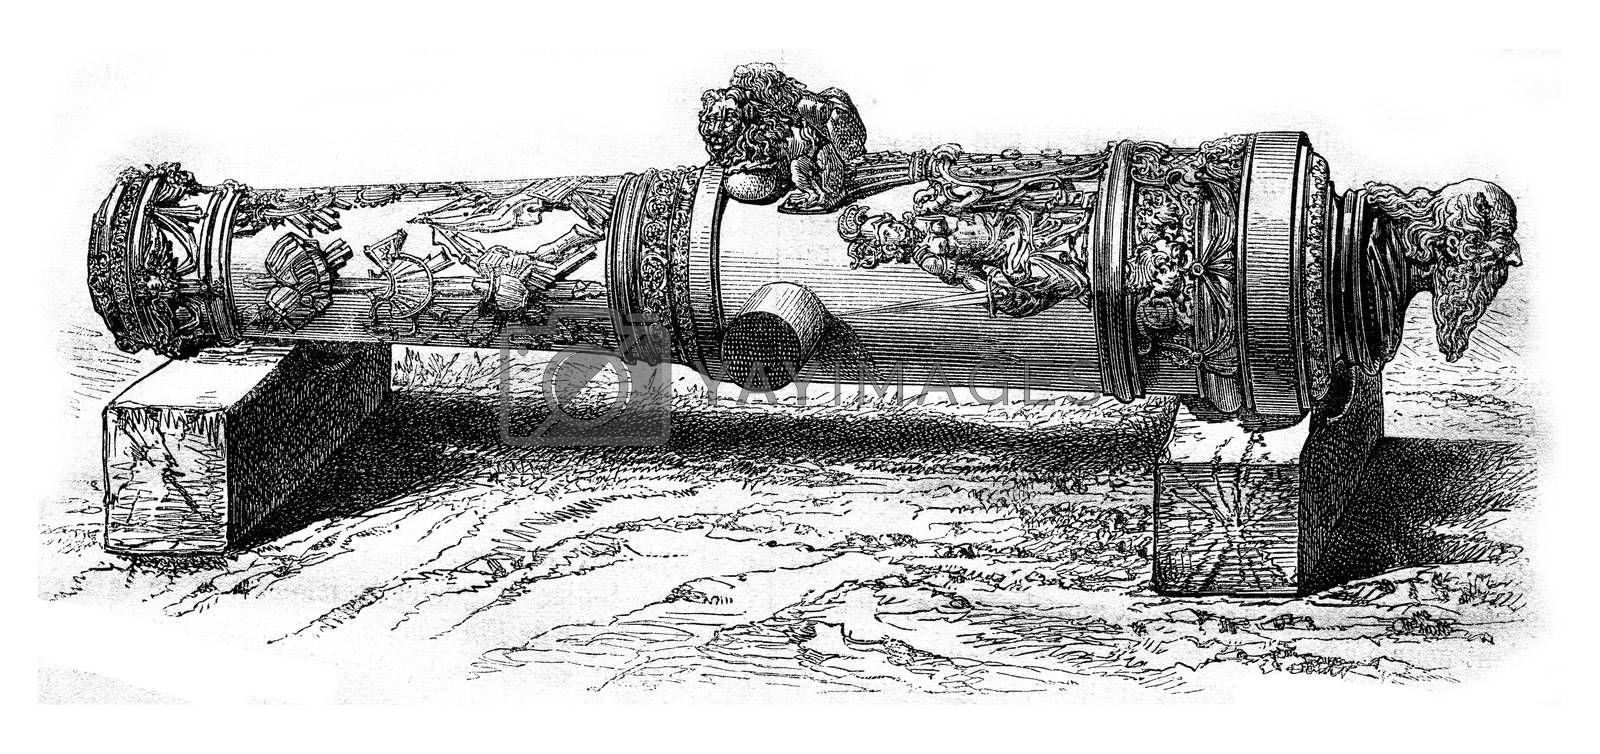 The Cannon St. Paul, National Museum of Florence, vintage engrav by Morphart